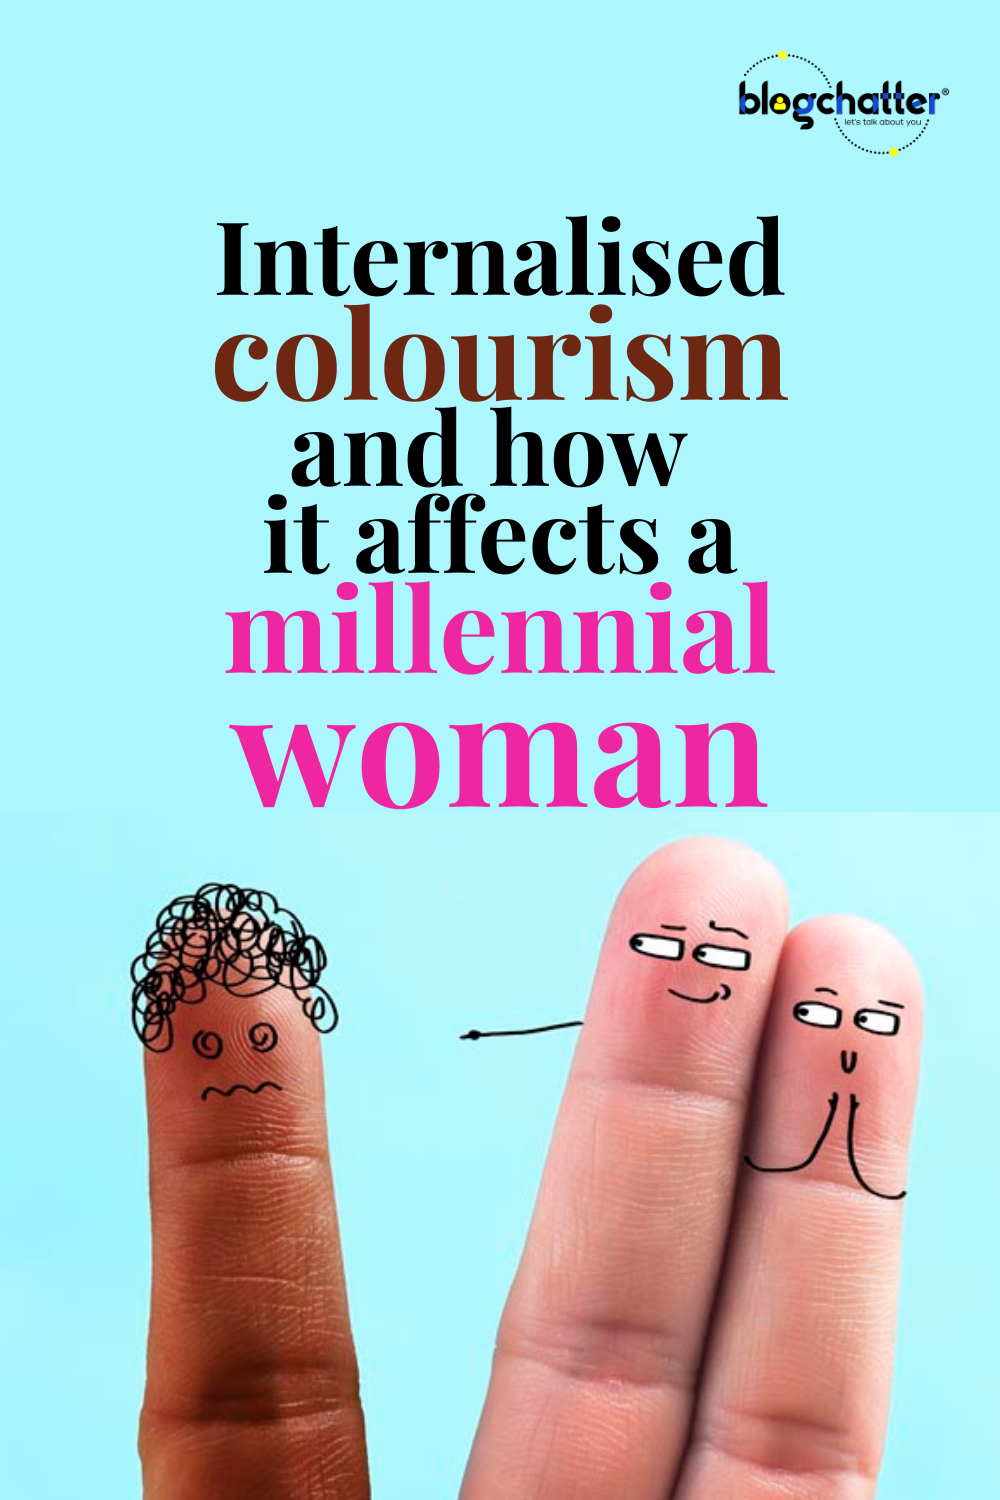 Internalised colourism and how it affects a millennial woman